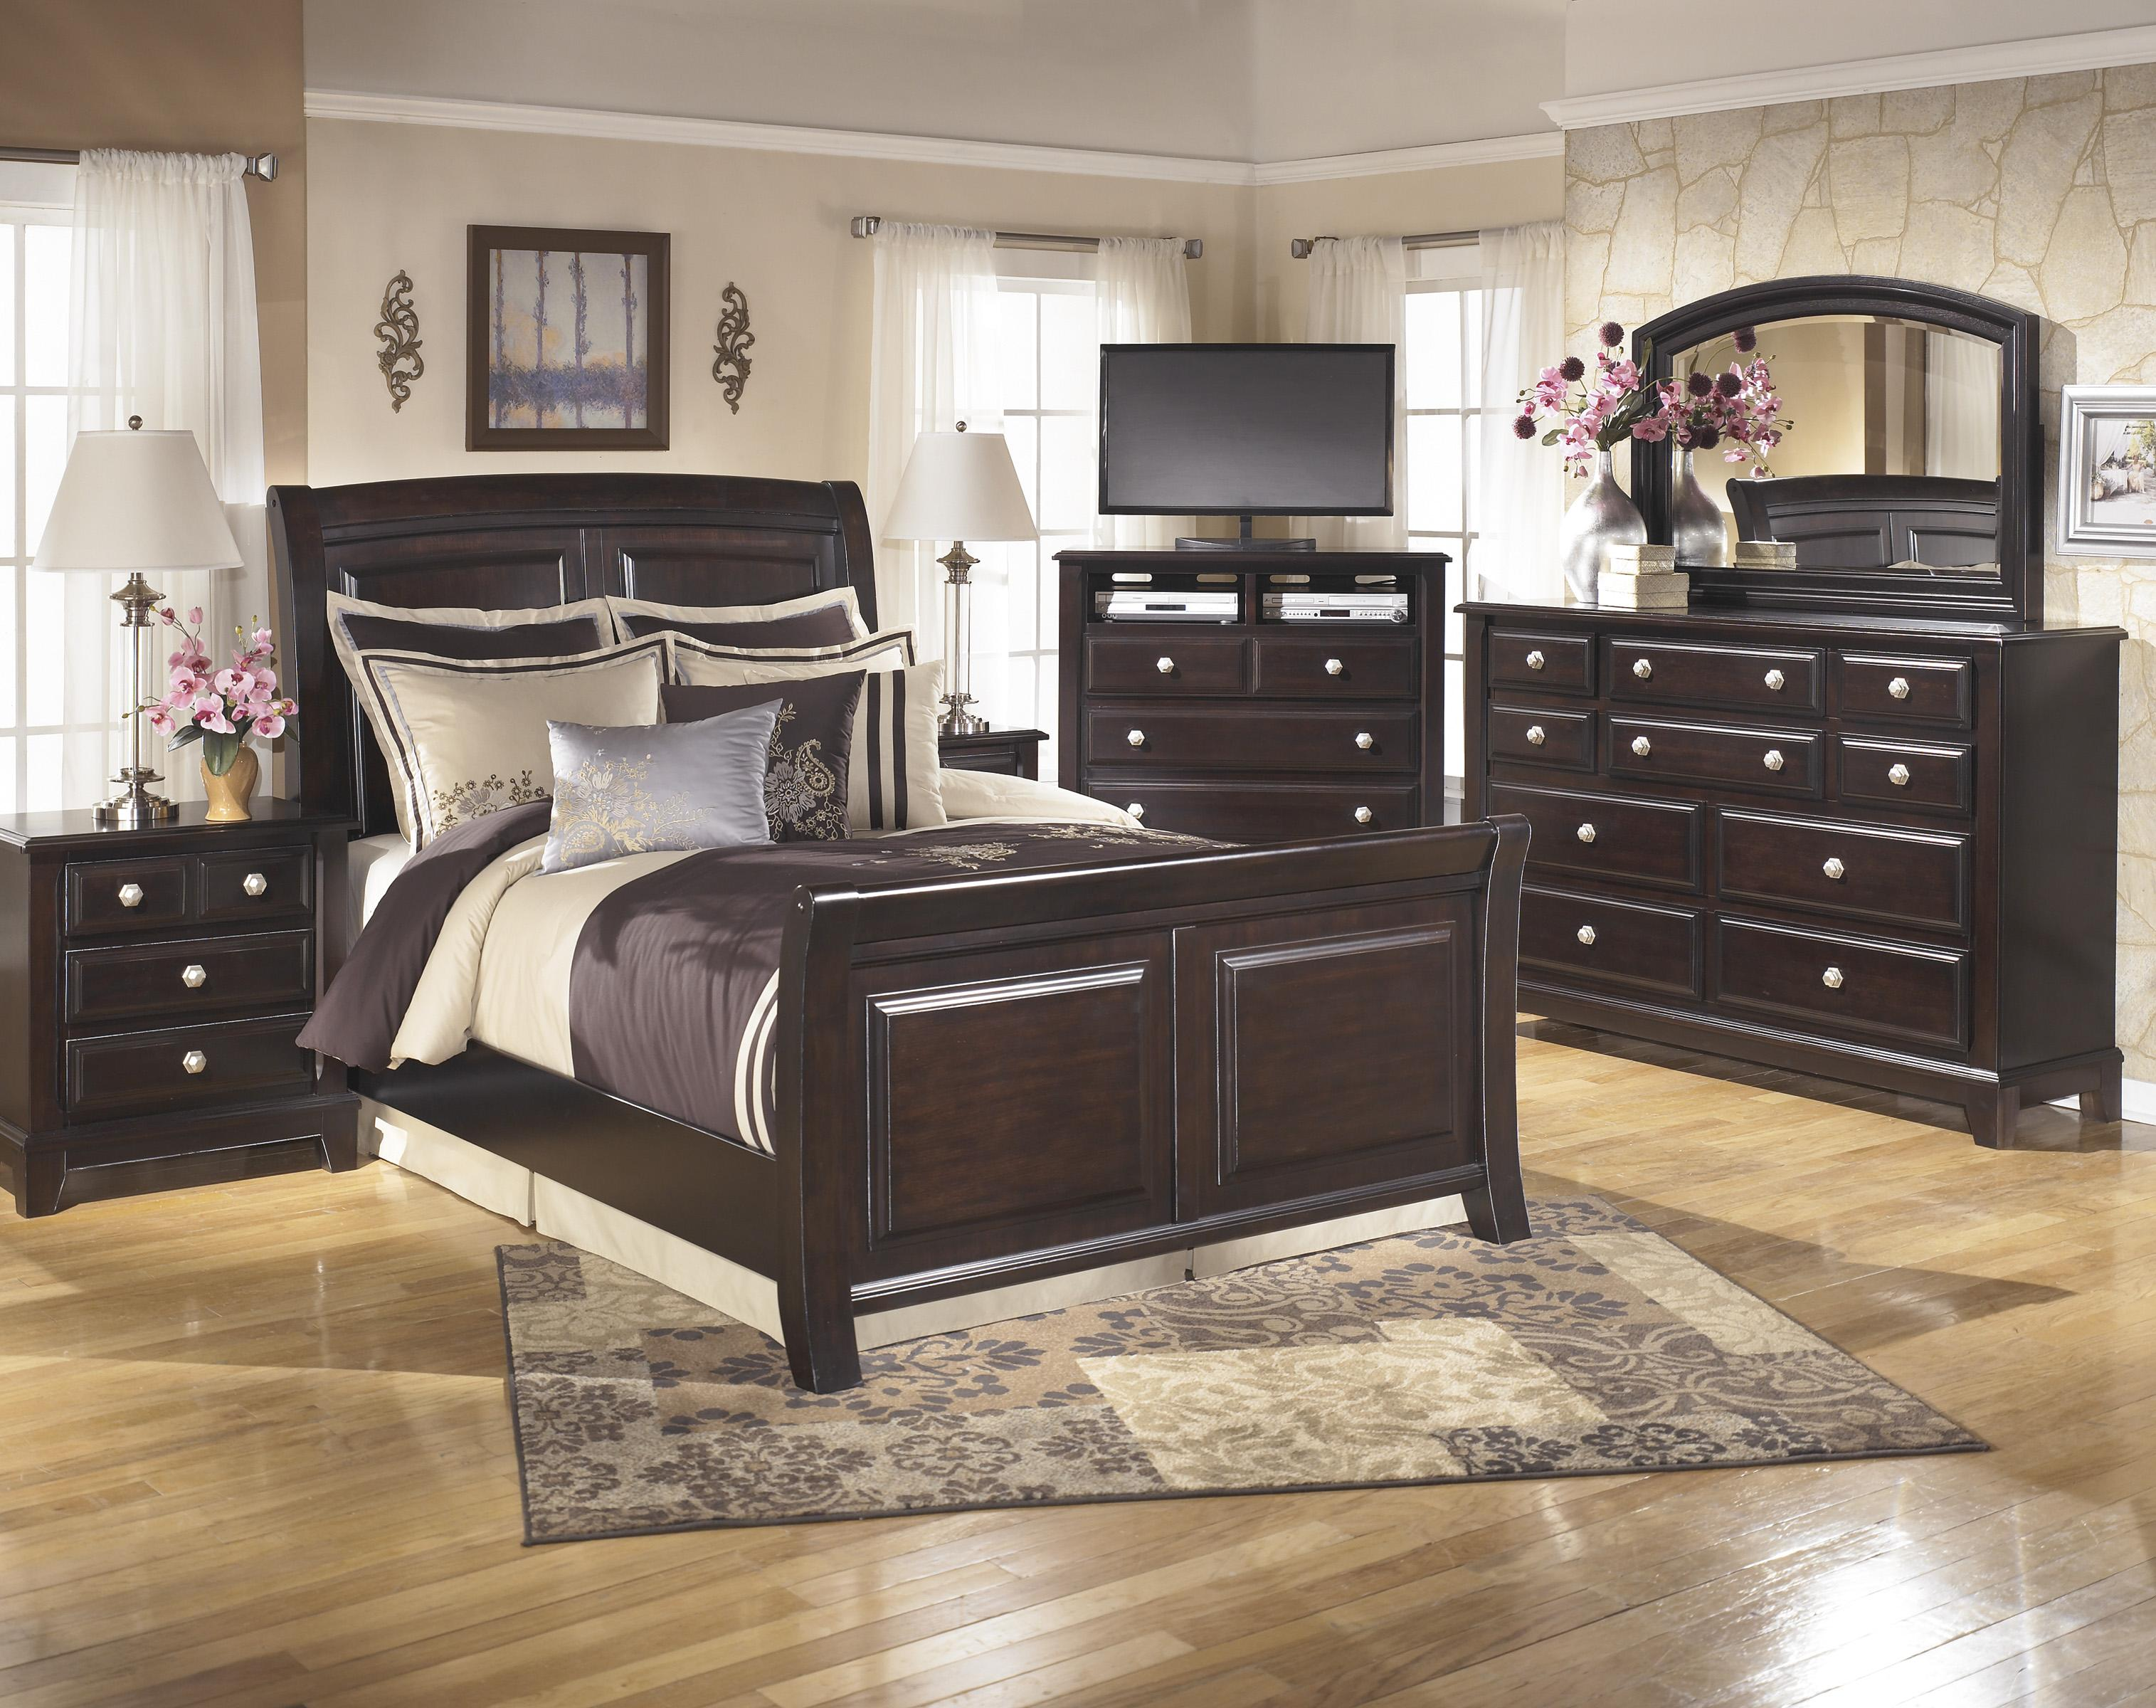 Signature Design by Ashley Ridgley Queen Bedroom Group - Item Number: B520 Q Bedroom Group 2